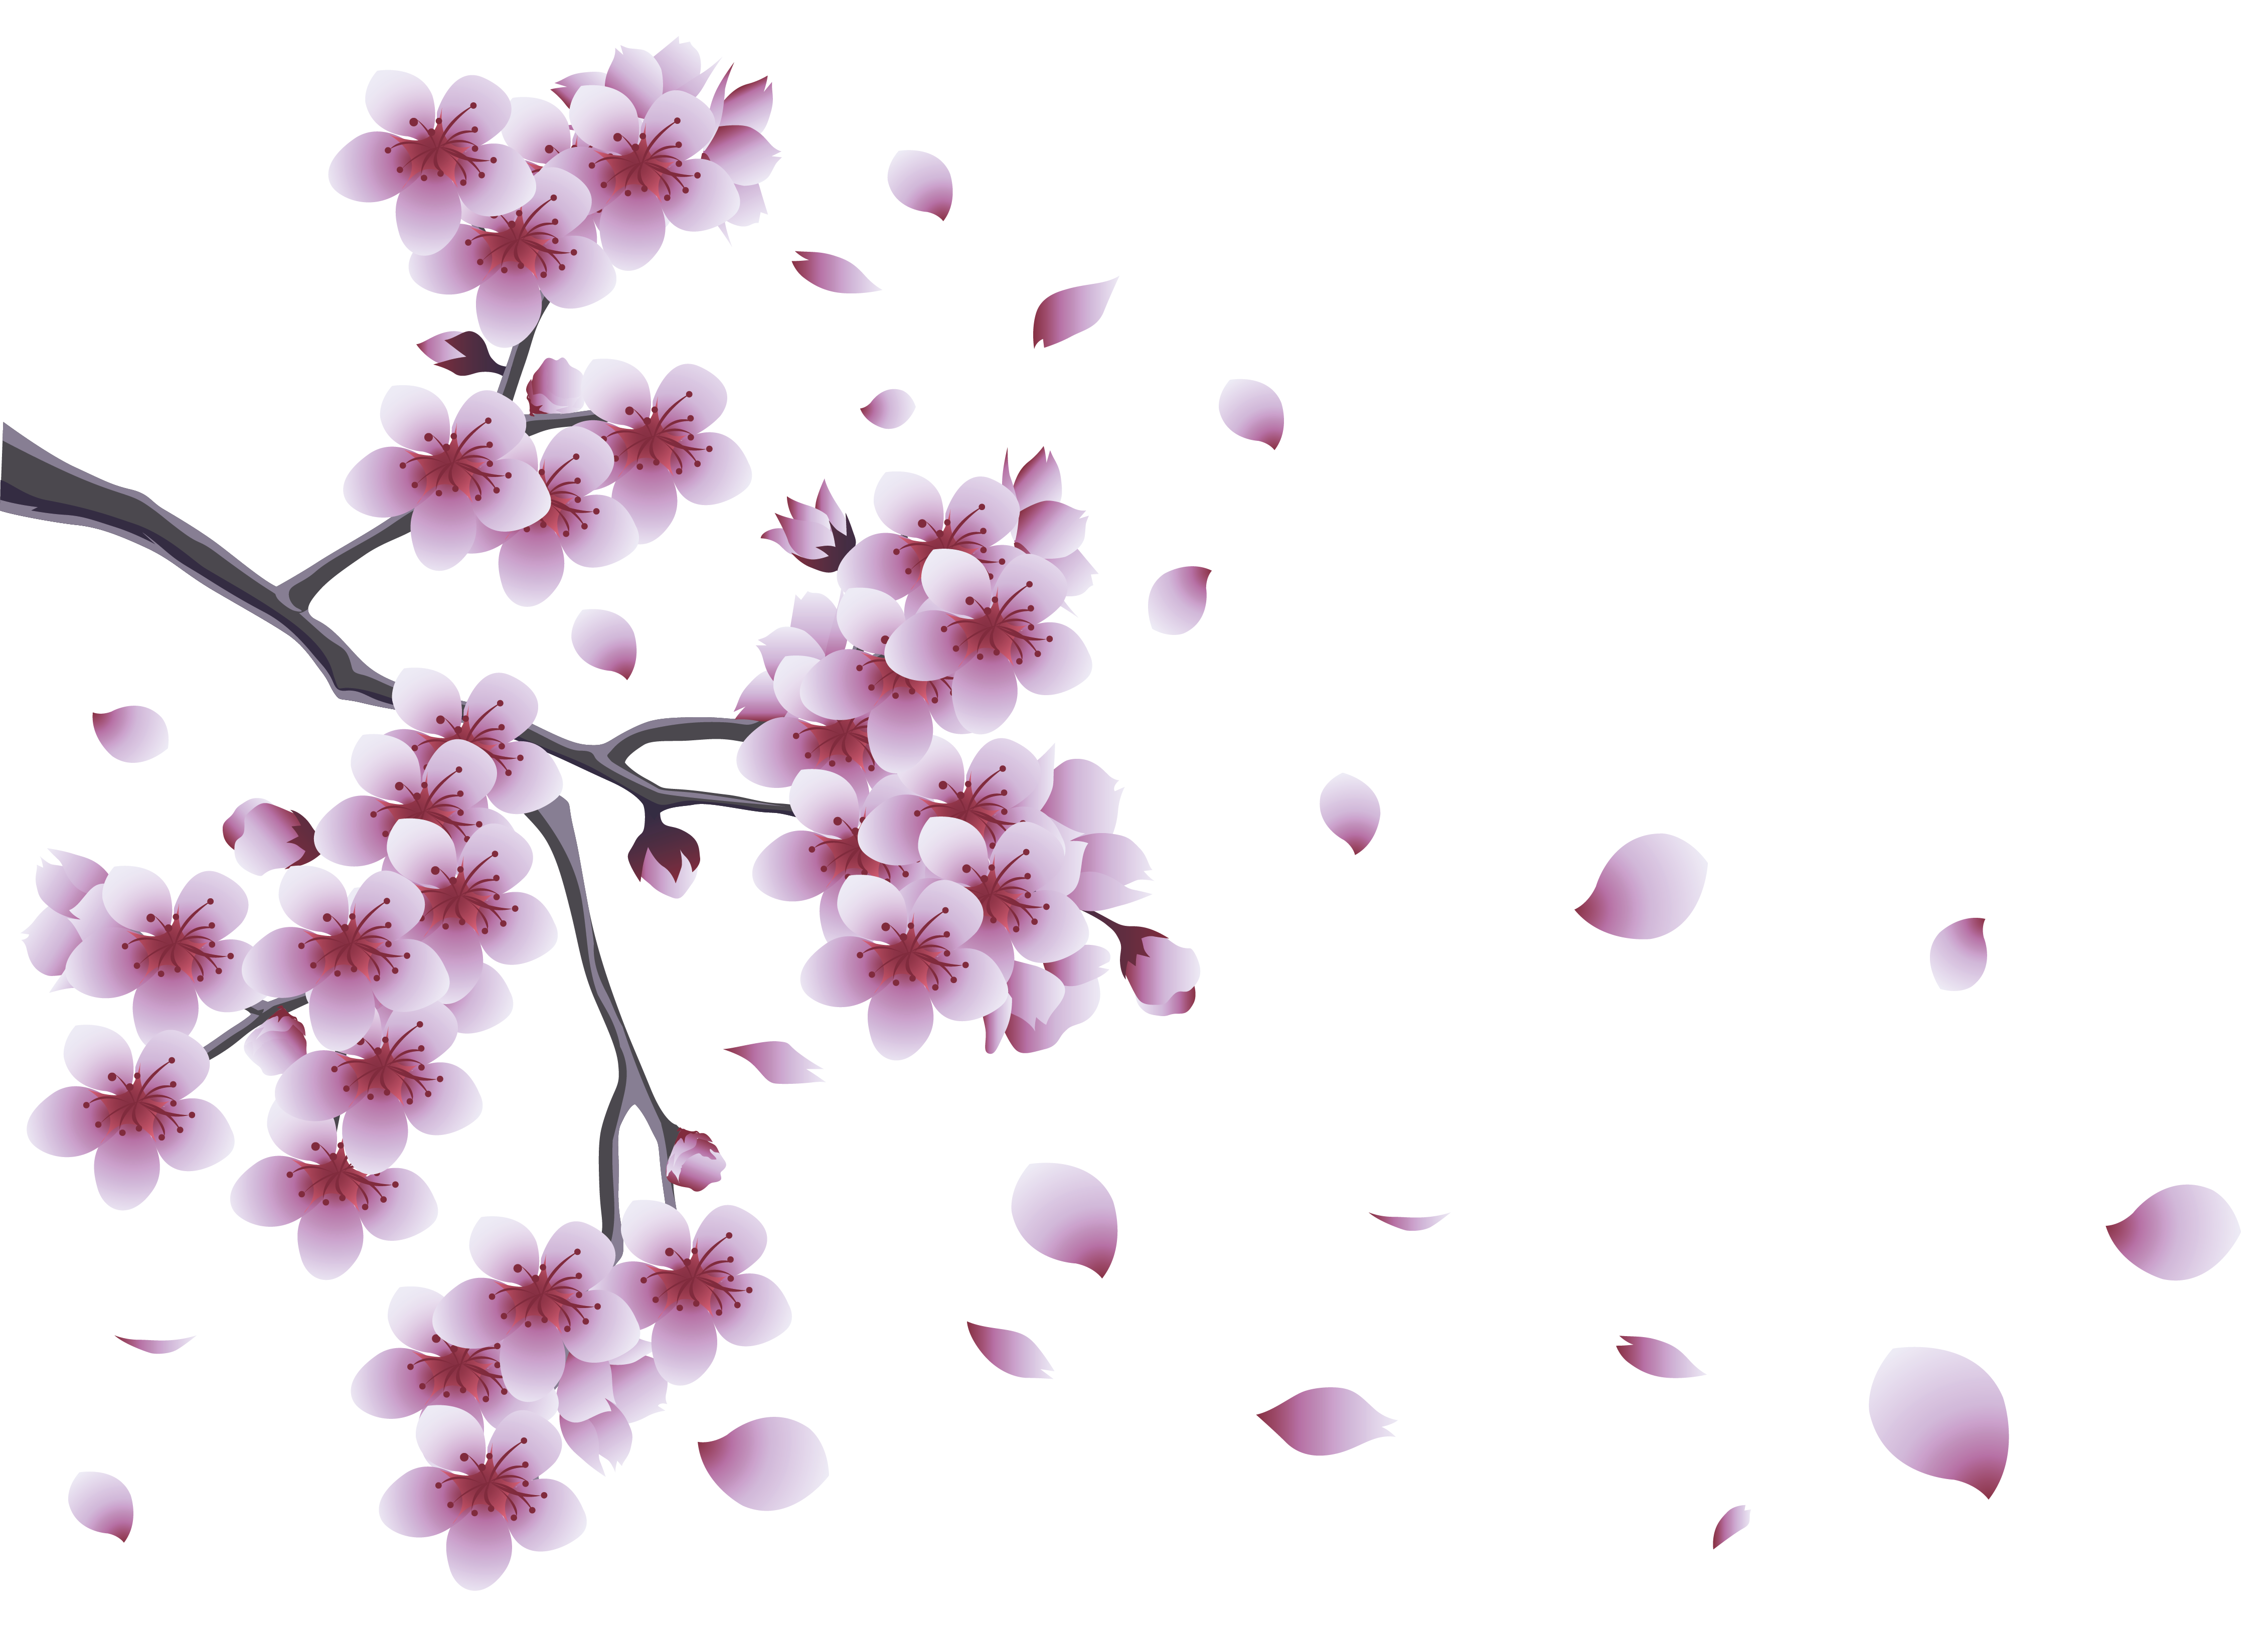 Png Tree With White And Pink Flowers - Flower branch png transparent stock - RR collections